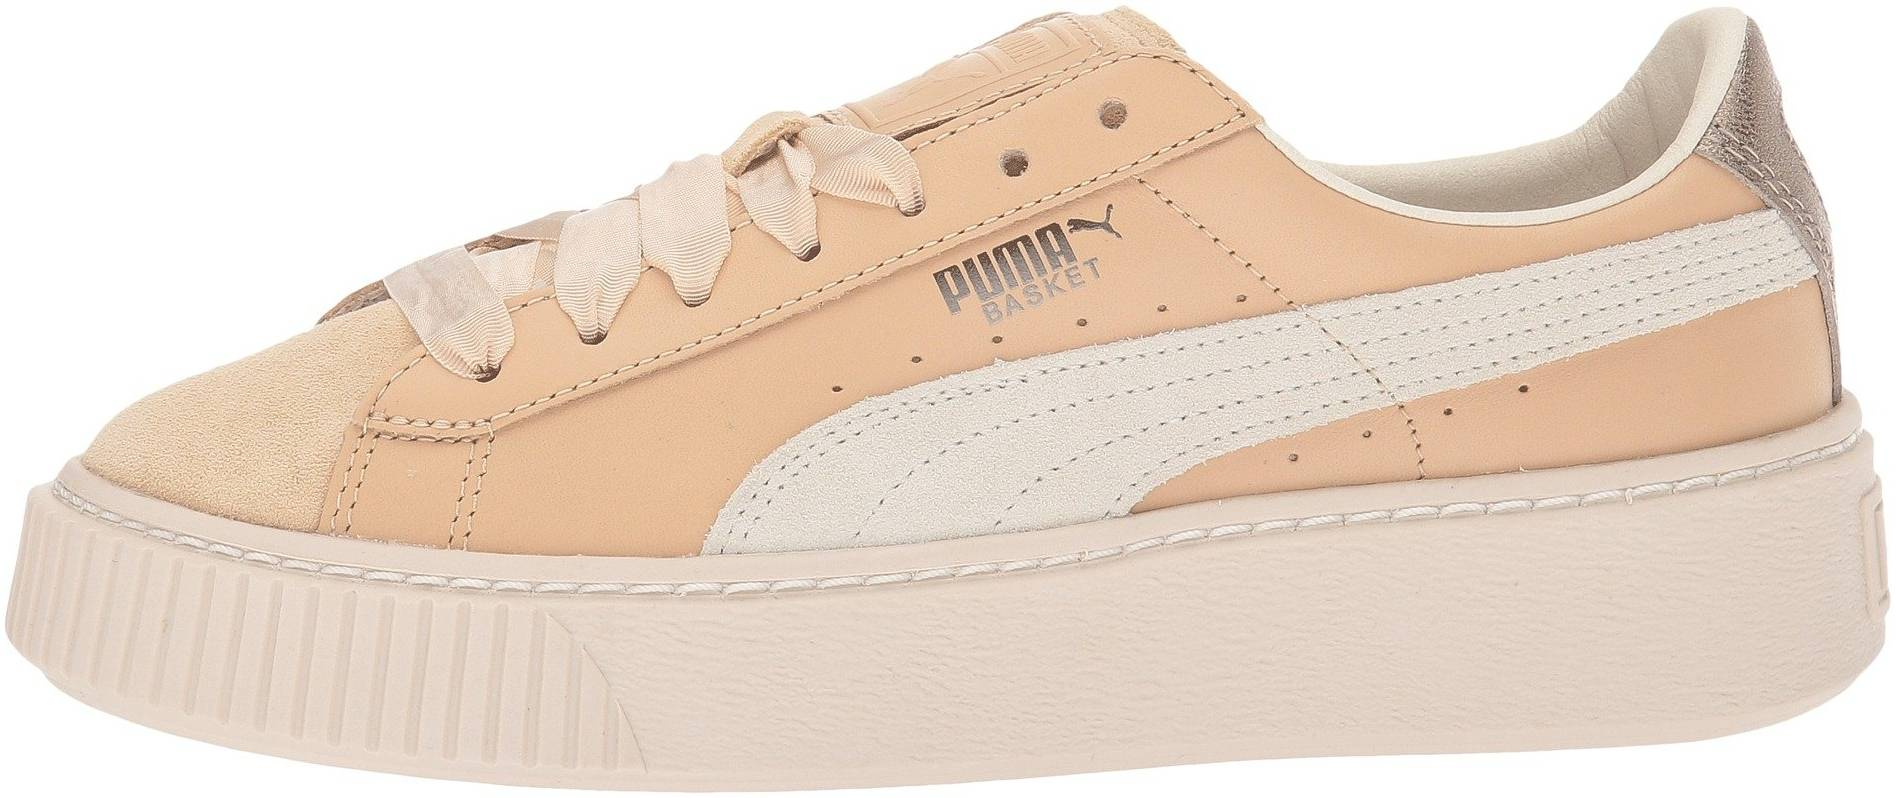 Only $40 + Review of Puma Platform Up